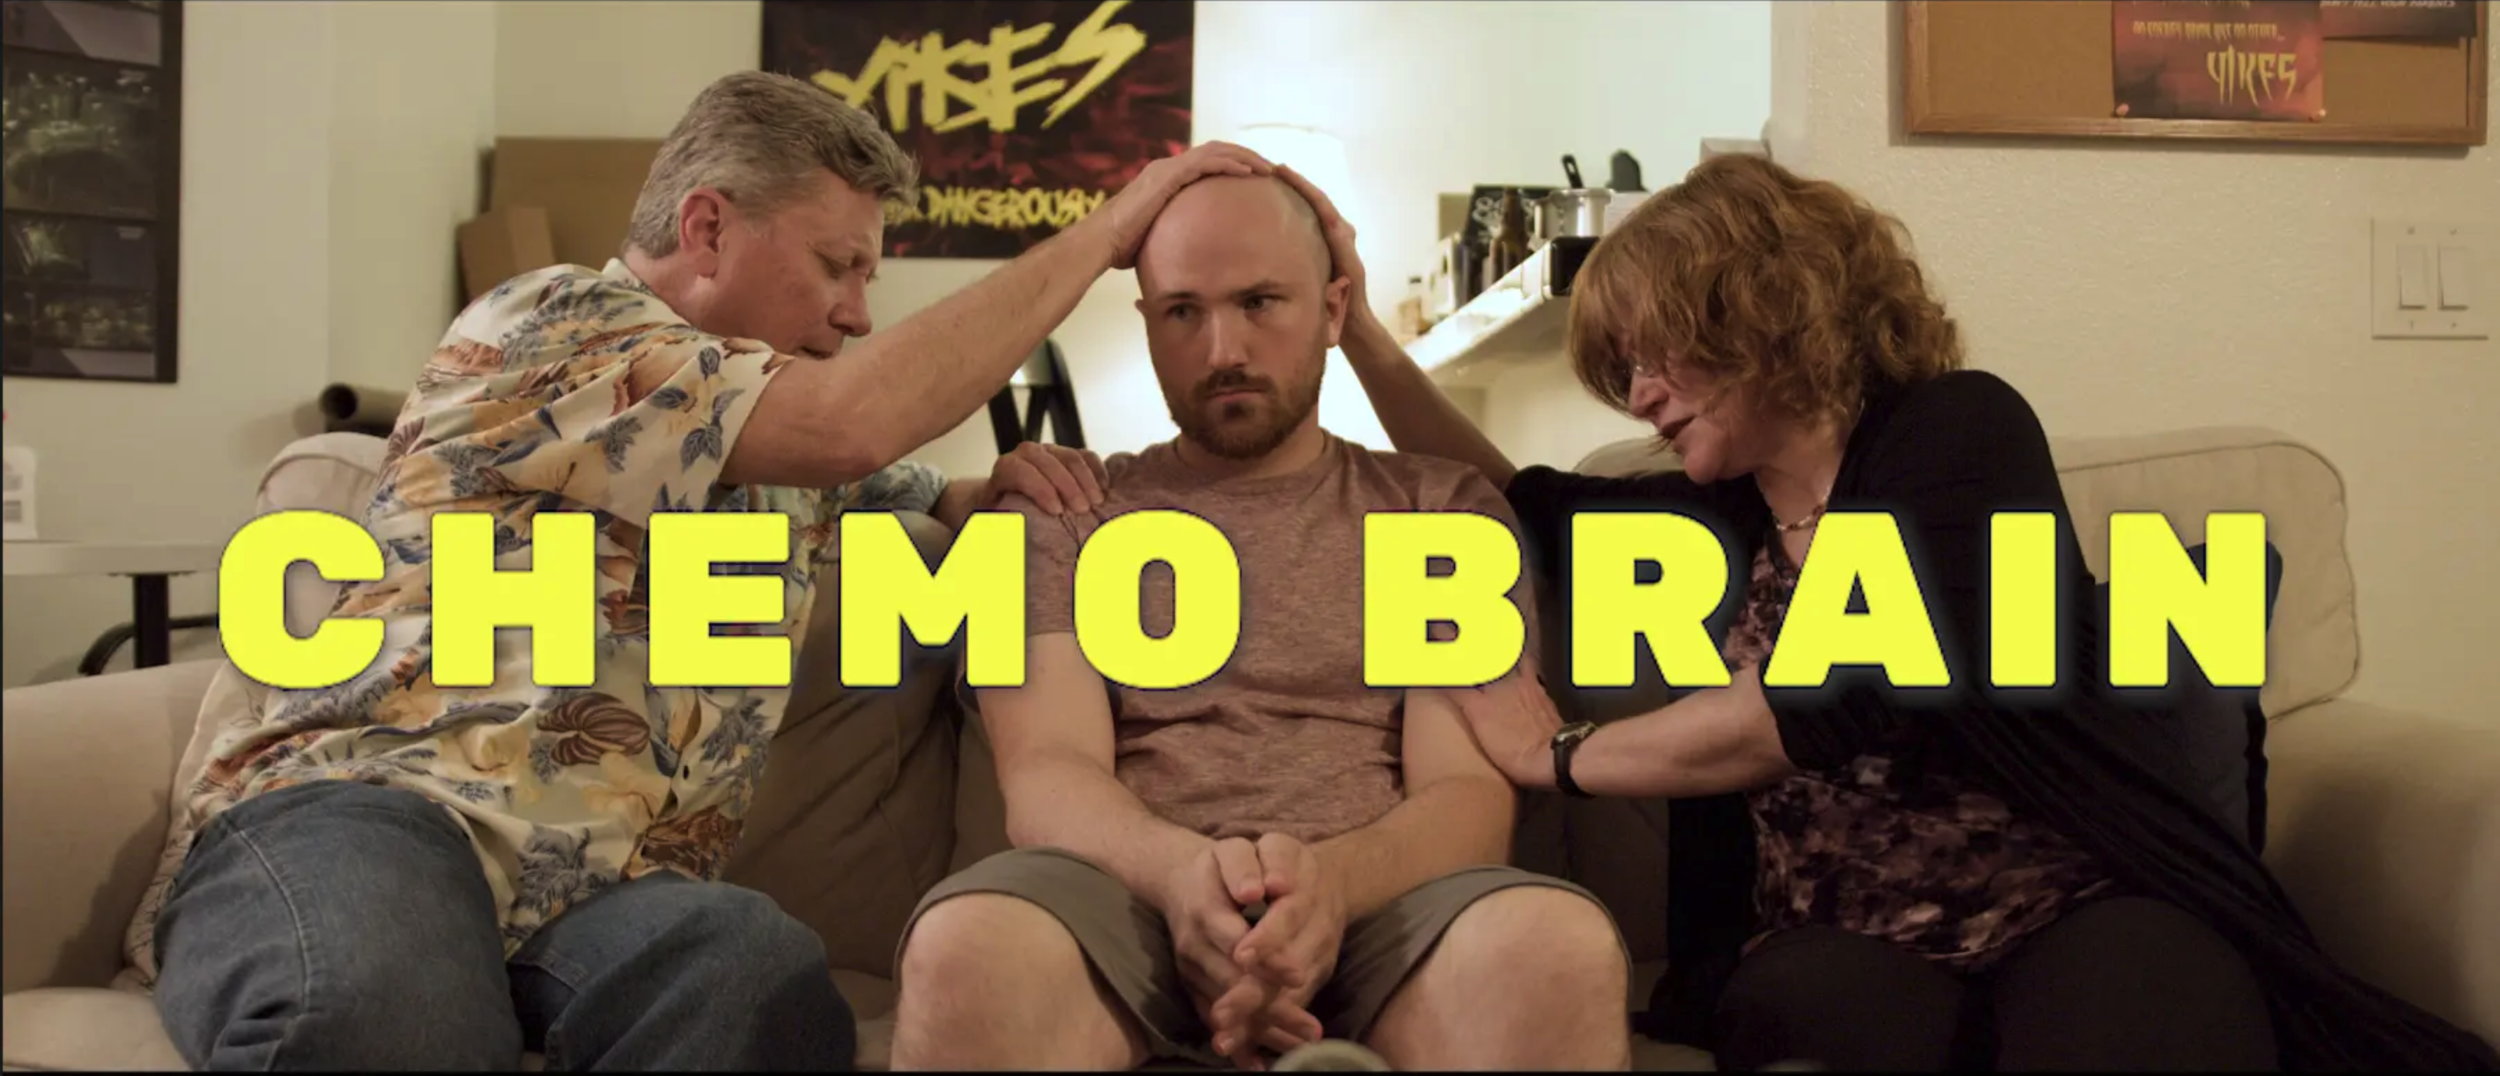 I wrote and star in this semi-autobiographical Headcase Productions short film (16 min) about a workaholic entrepreneur whose lingering health problems from his childhood chemotherapy risk thwarting the biggest opportunity of his career. It's directed by Lauren Gilbert, produced by Emily Ziegler and also stars Alivia Long, Dave Faulkner, Anne Gundry.